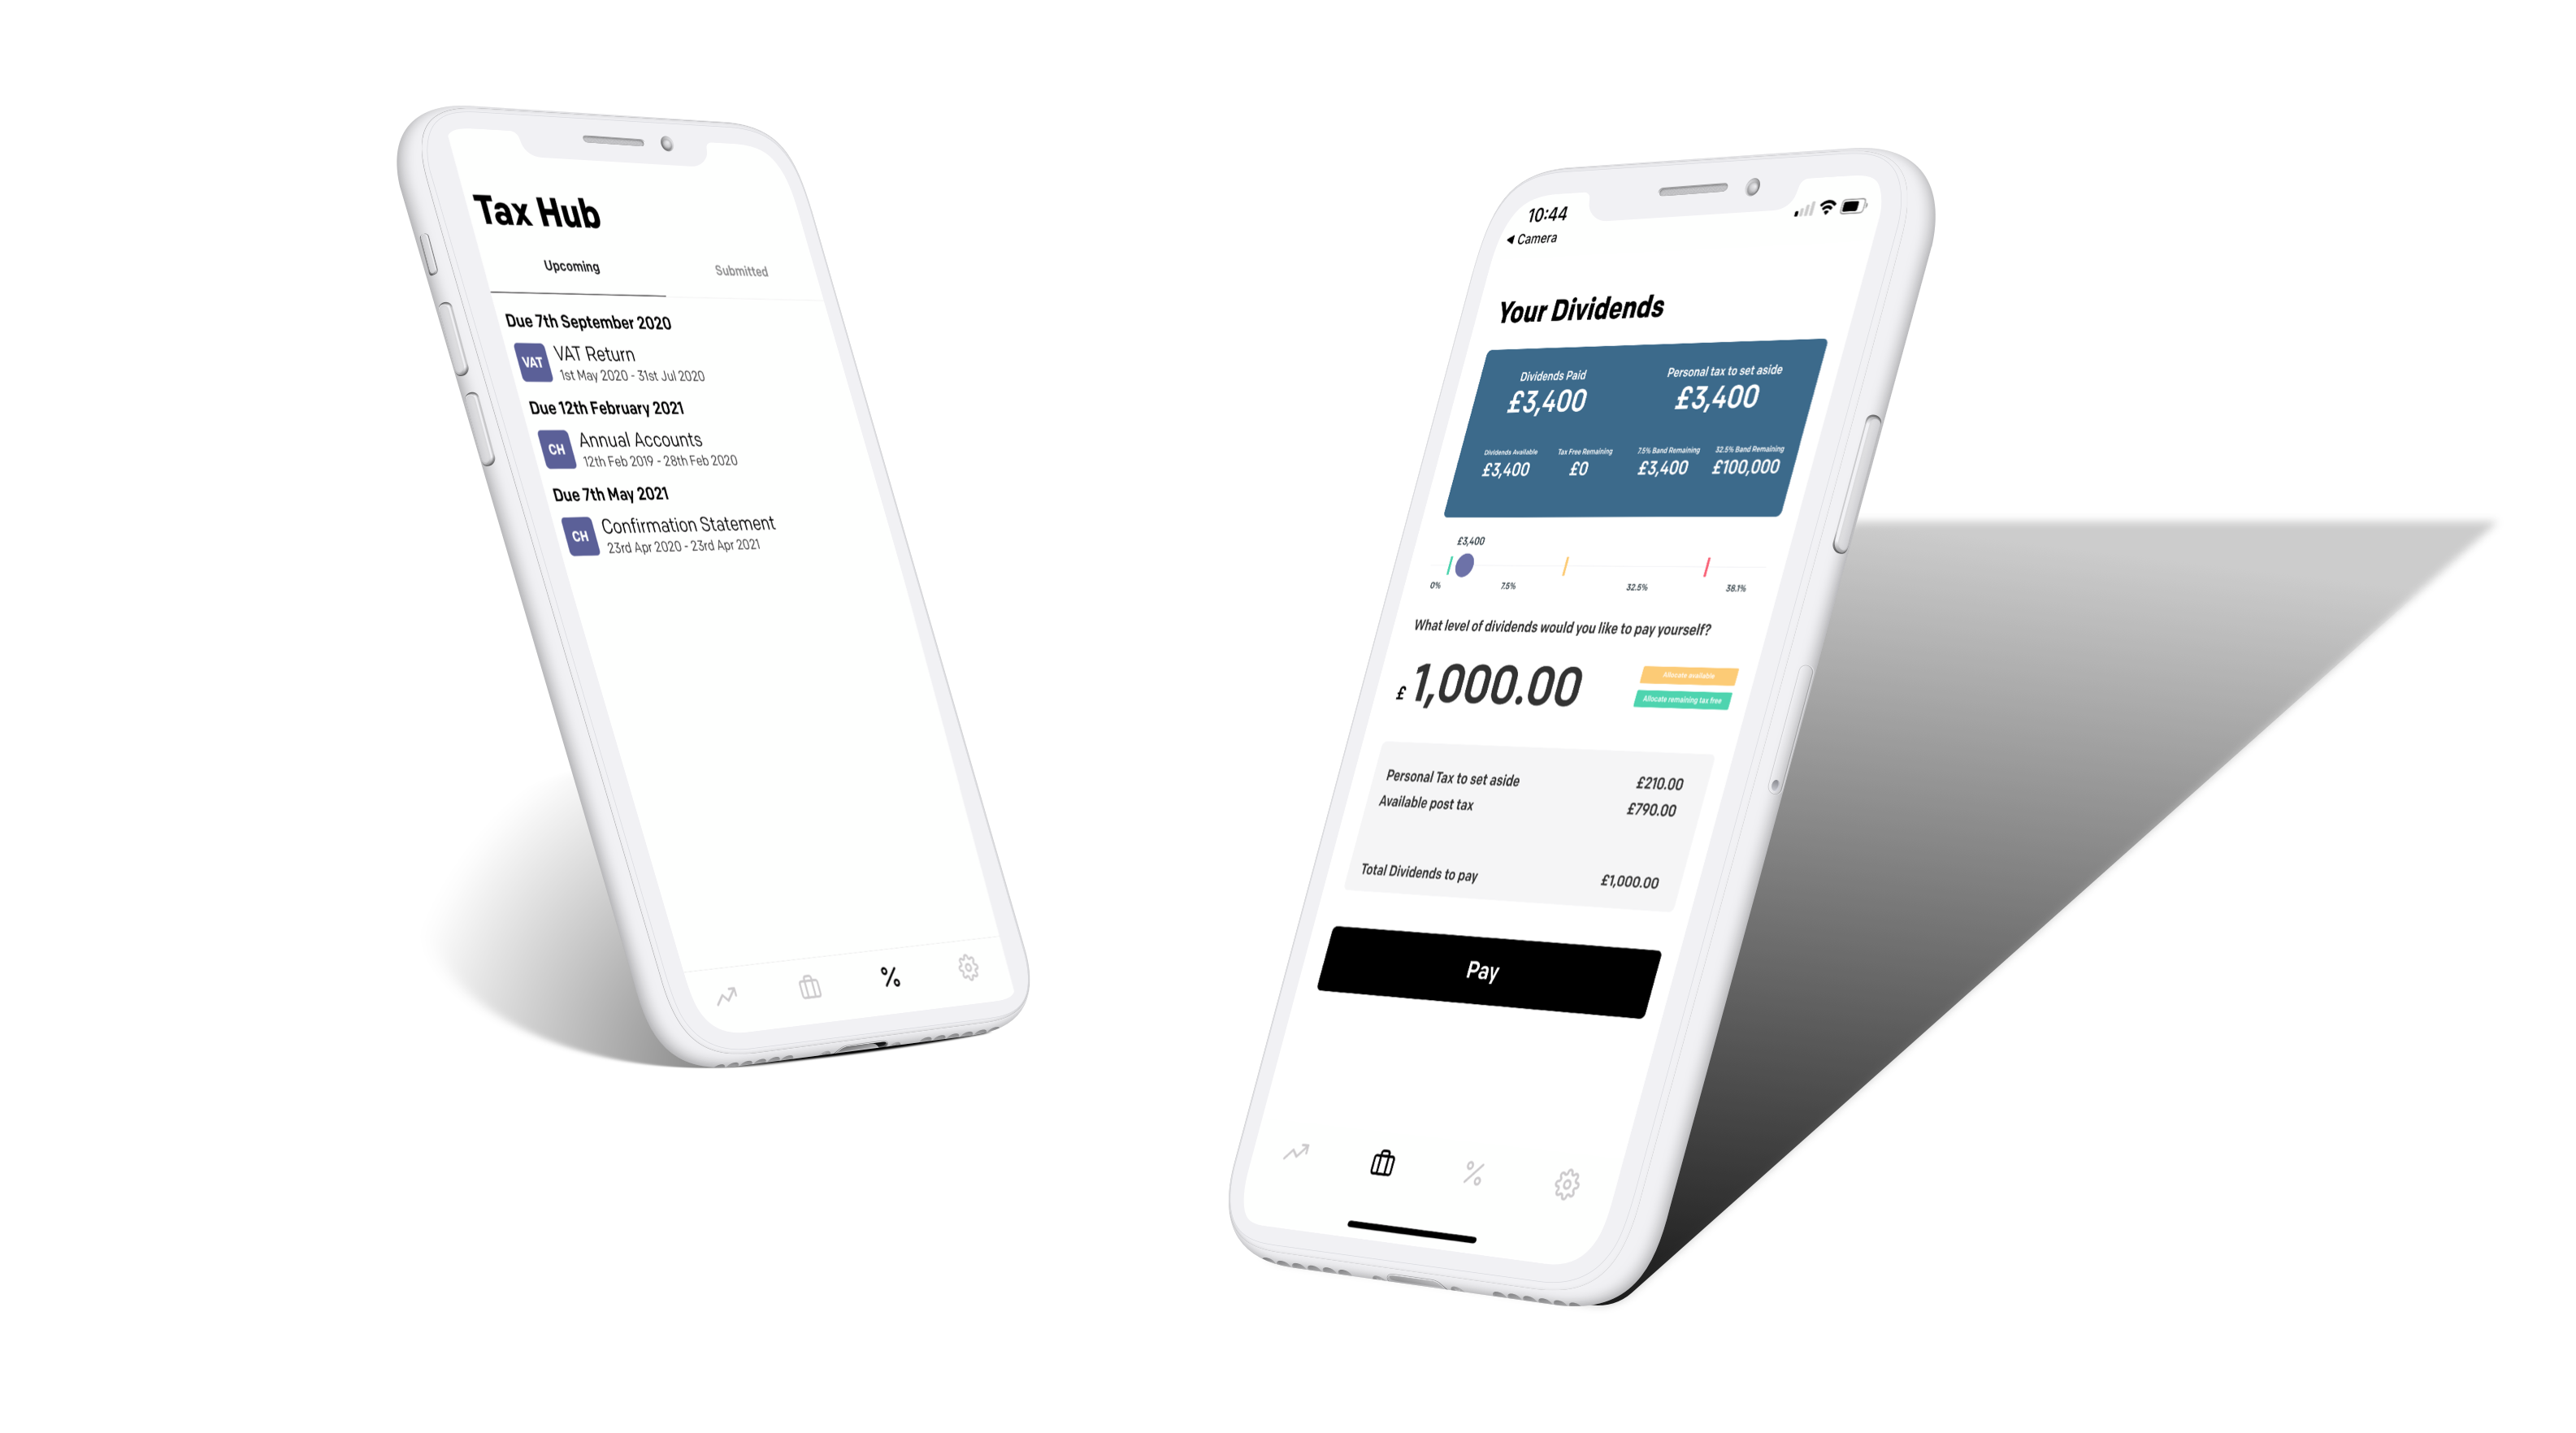 dividends and tax hub screens in Ember